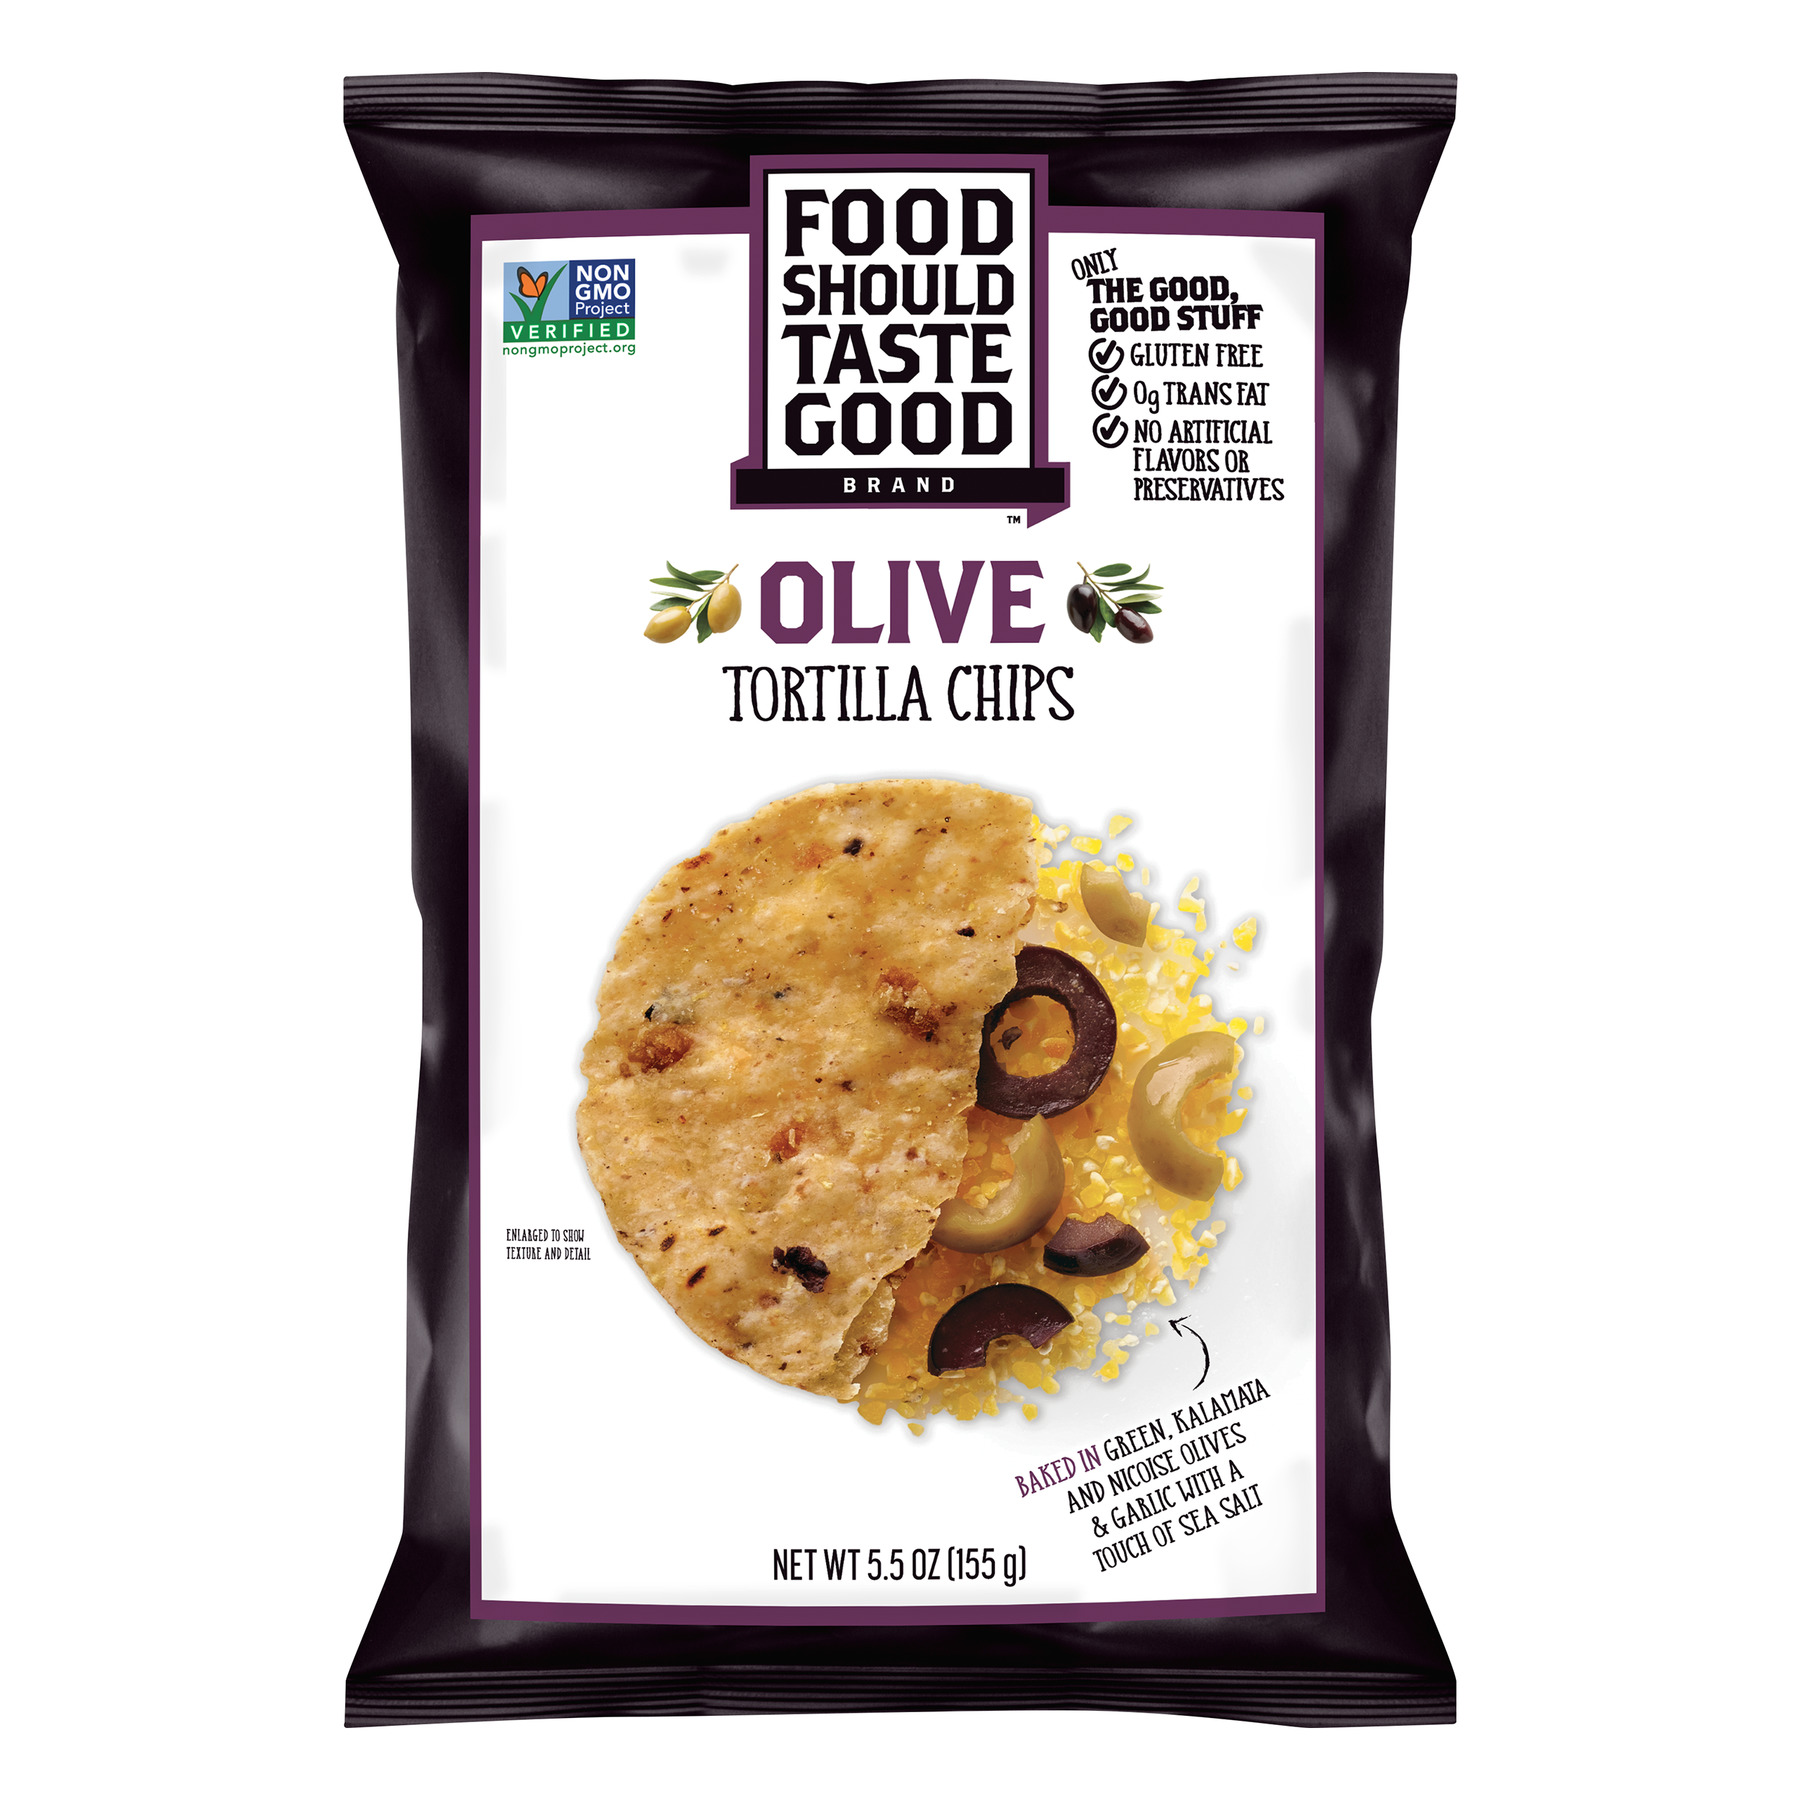 Food Should Taste Good Olive Tortilla Chips, 5.5 oz